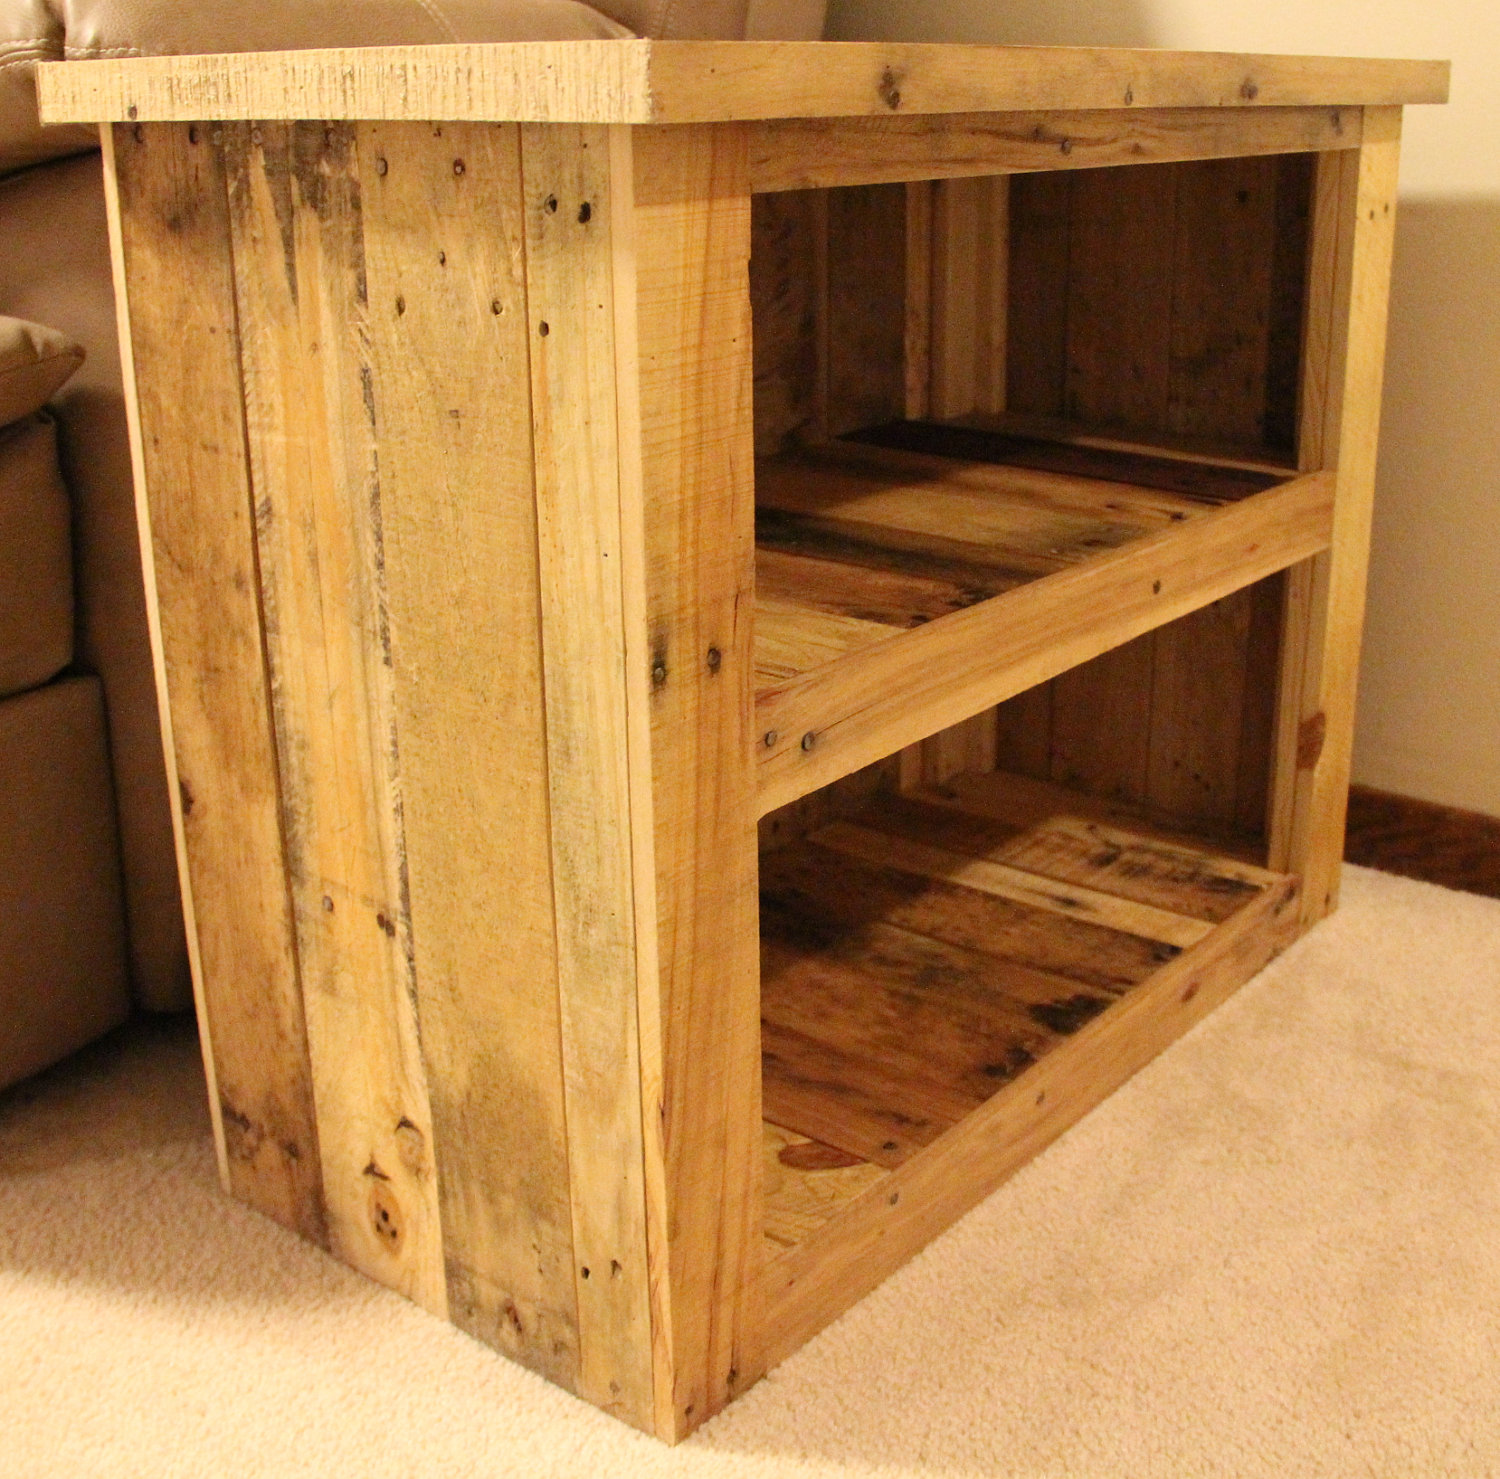 barnwood end table fossil brewing design create beautiful reclaimed wood side tables diy accent plans sliding barn doors small half circle black lamp shades corner and chairs